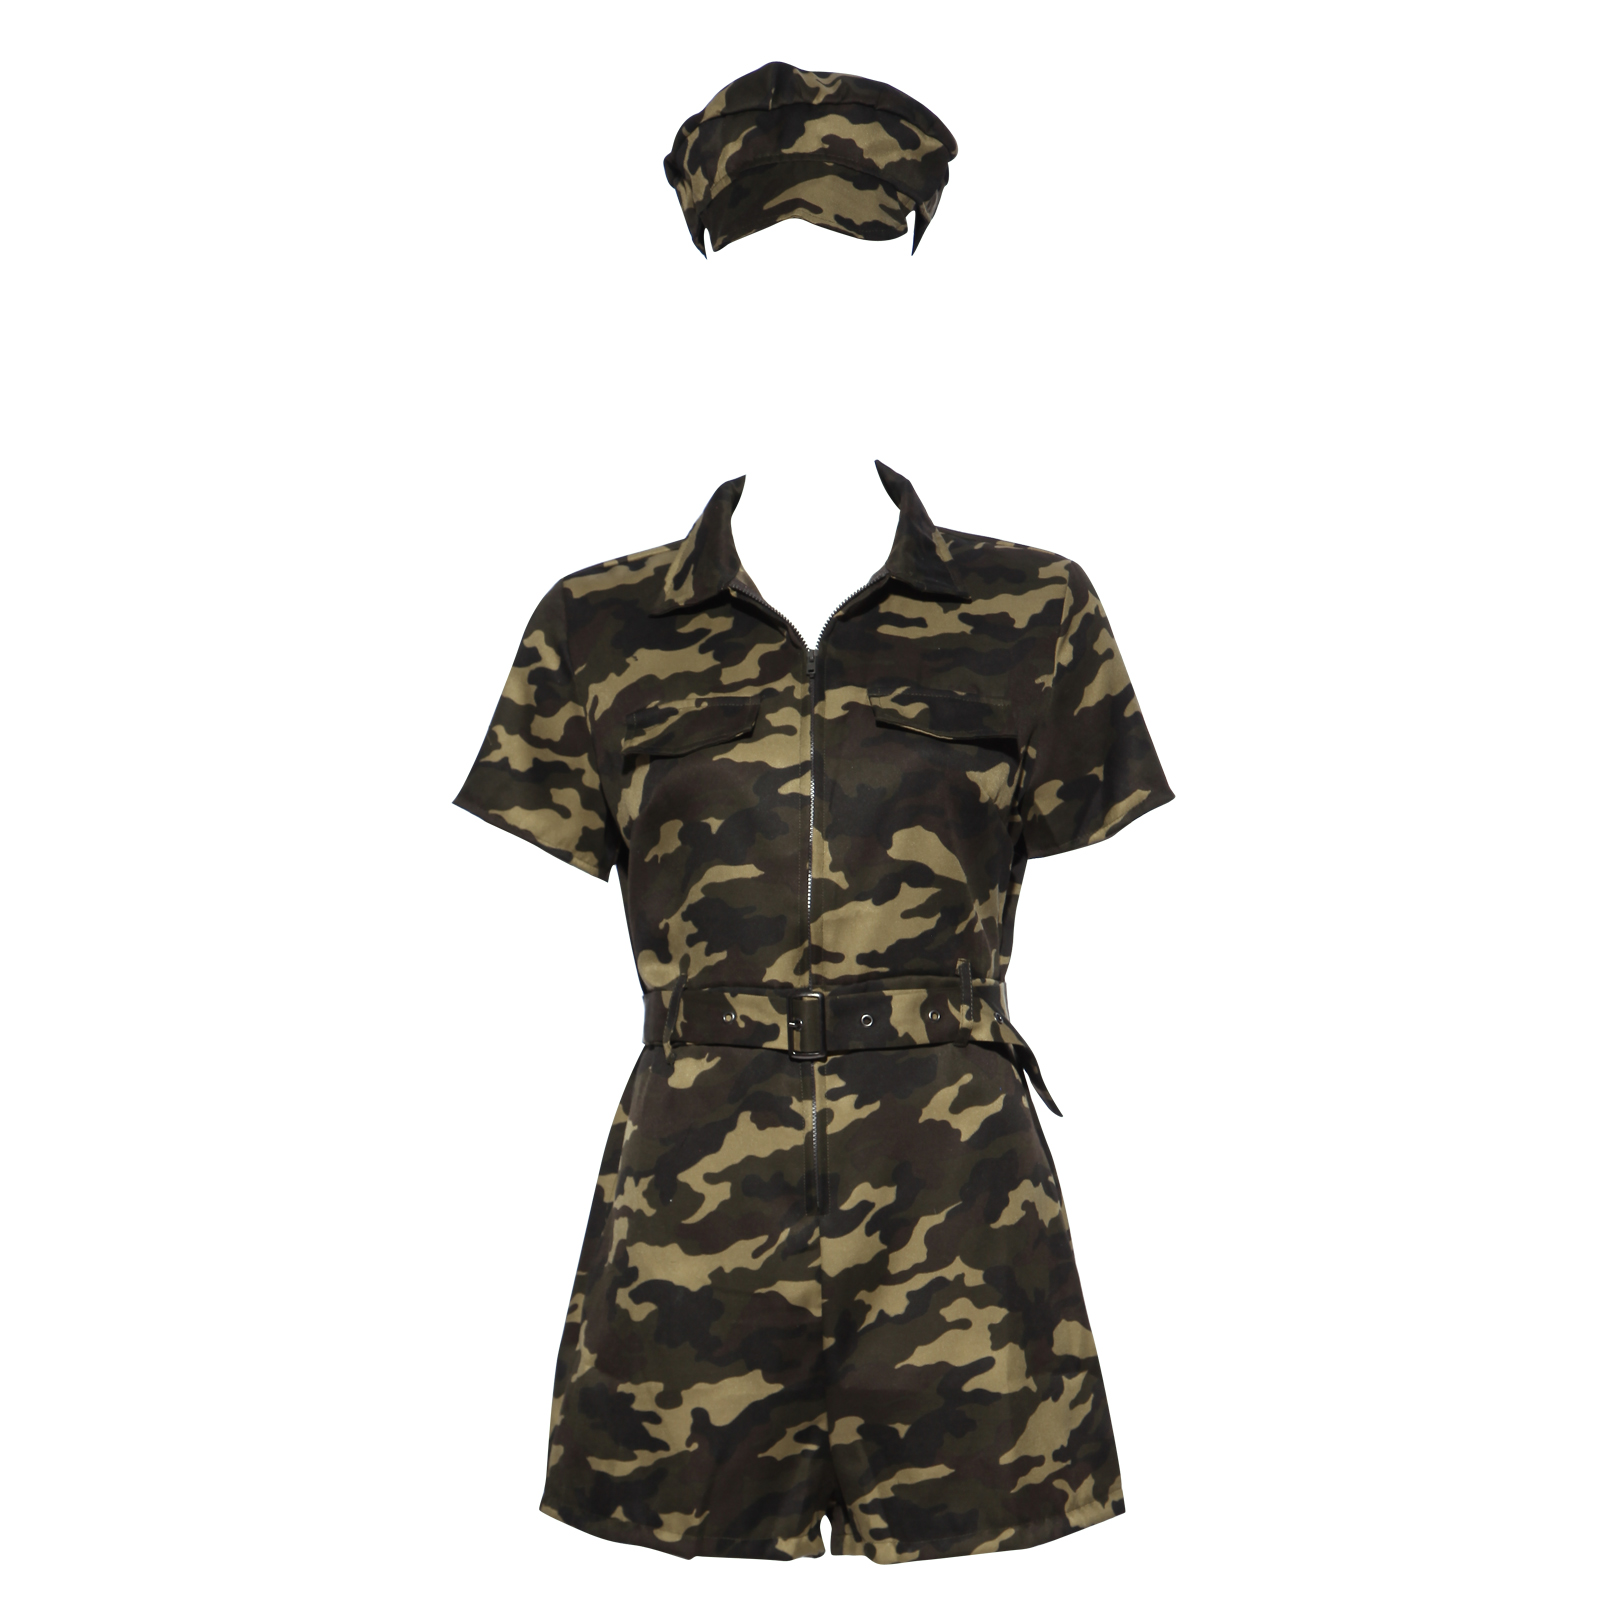 women ladies sexy us army uniform ww2 military camo. Black Bedroom Furniture Sets. Home Design Ideas